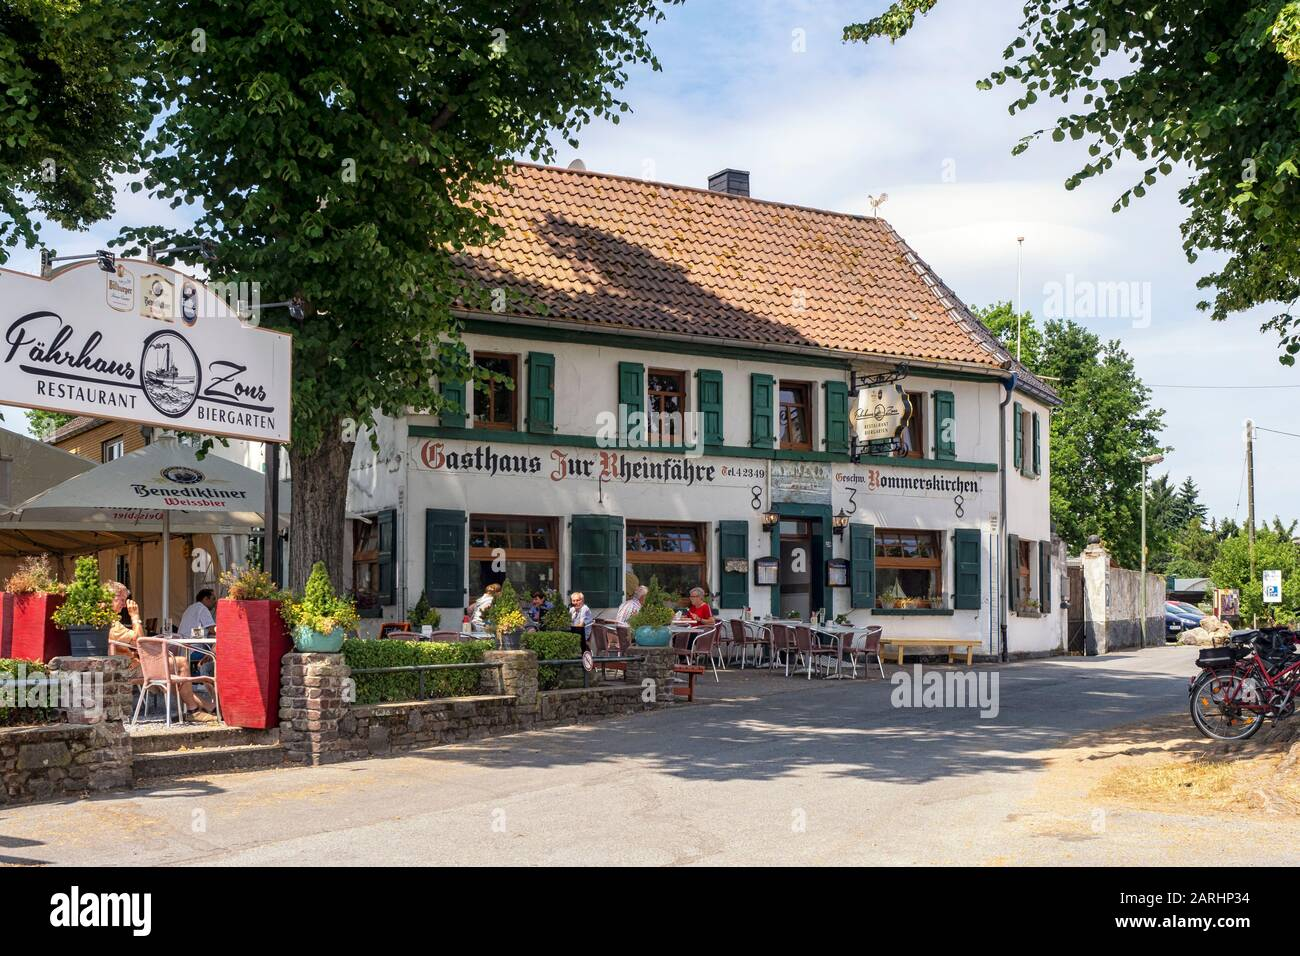 Rheinfahre High Resolution Stock Photography And Images Alamy